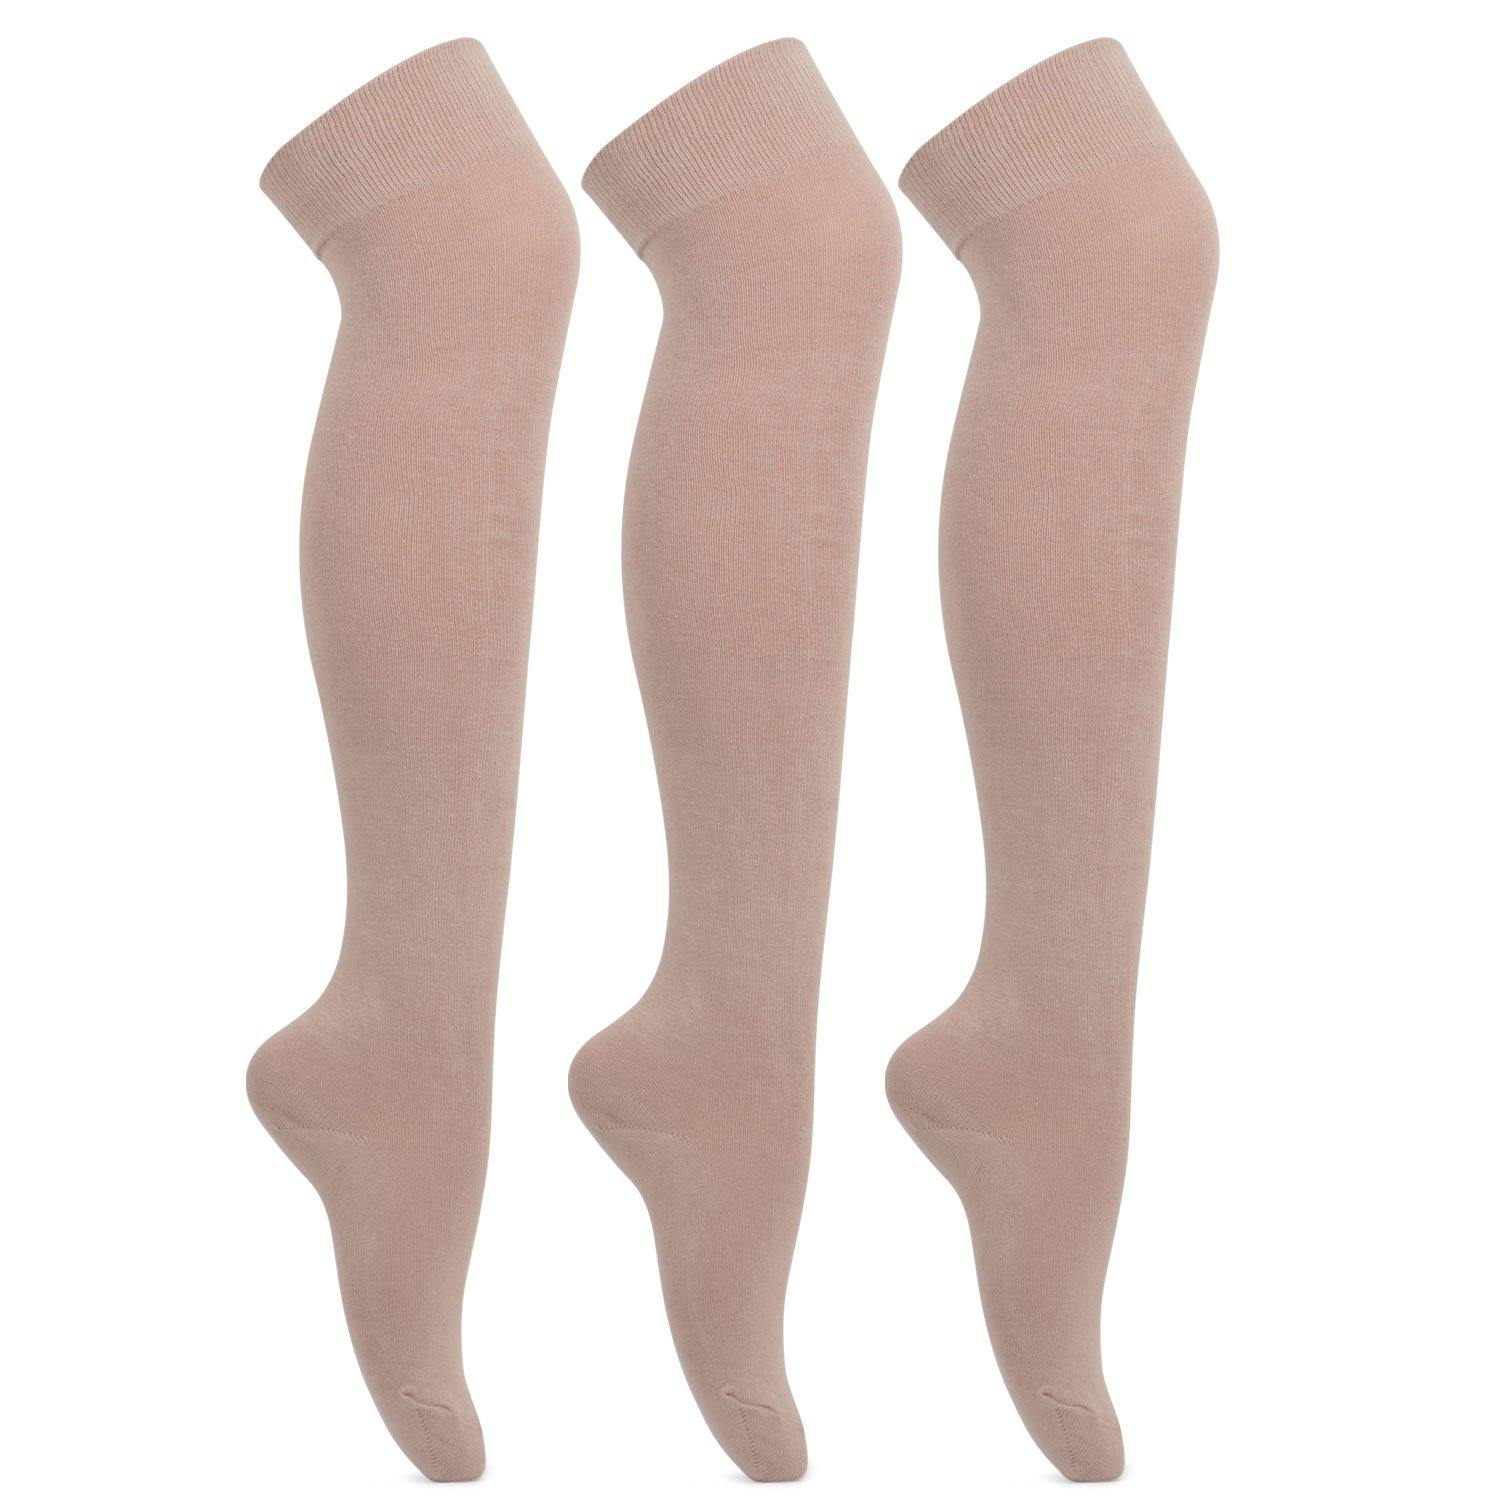 Formal Stockings  For School Girls - Pack of 3 - Bonjour Group